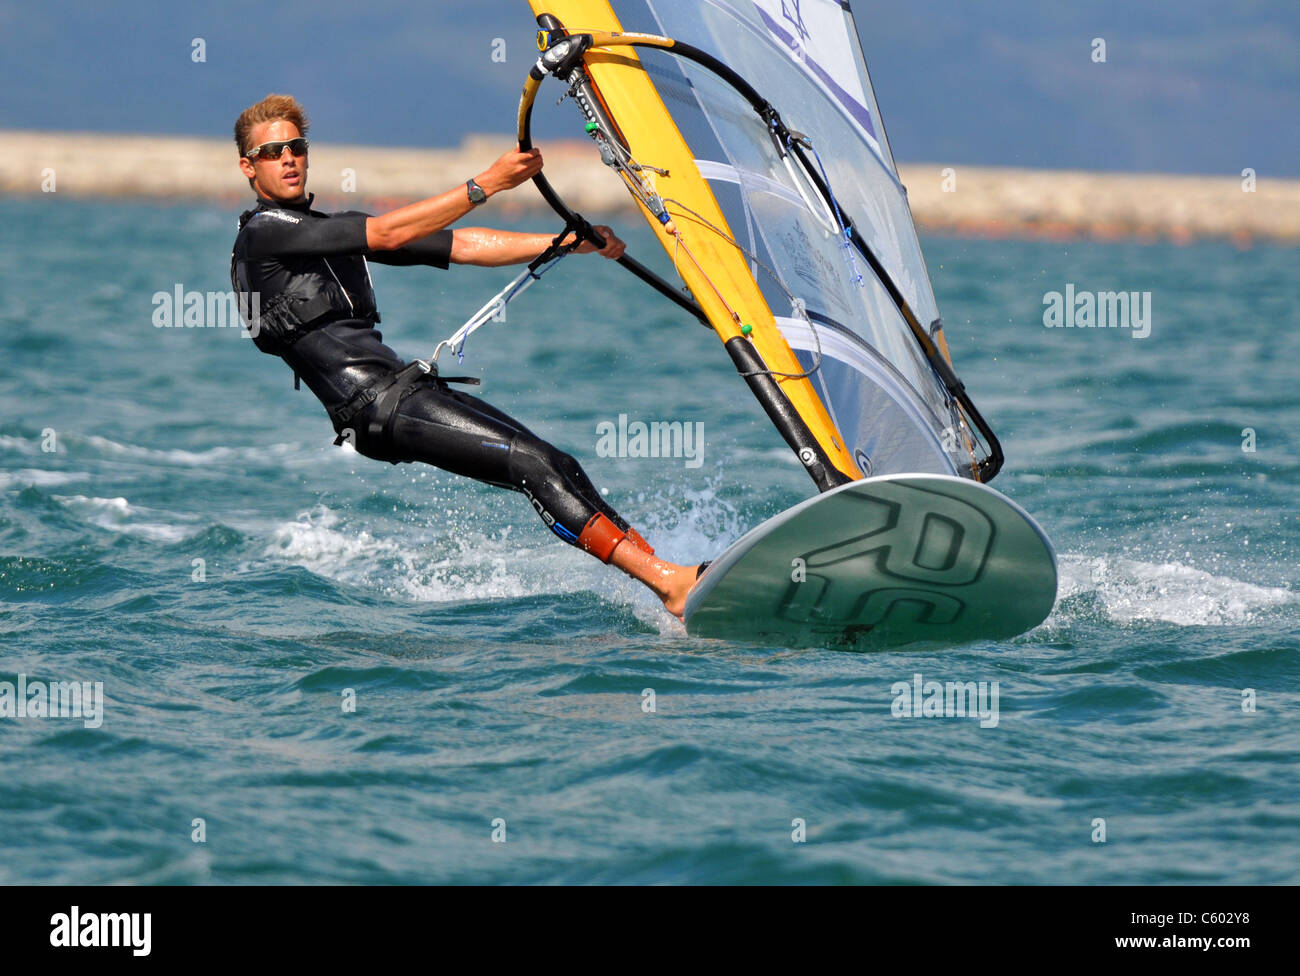 UK, Olympic Test Event. Olympic RSX Windsurfing Test Event. Nimrod Mashiah of Israel. - Stock Image